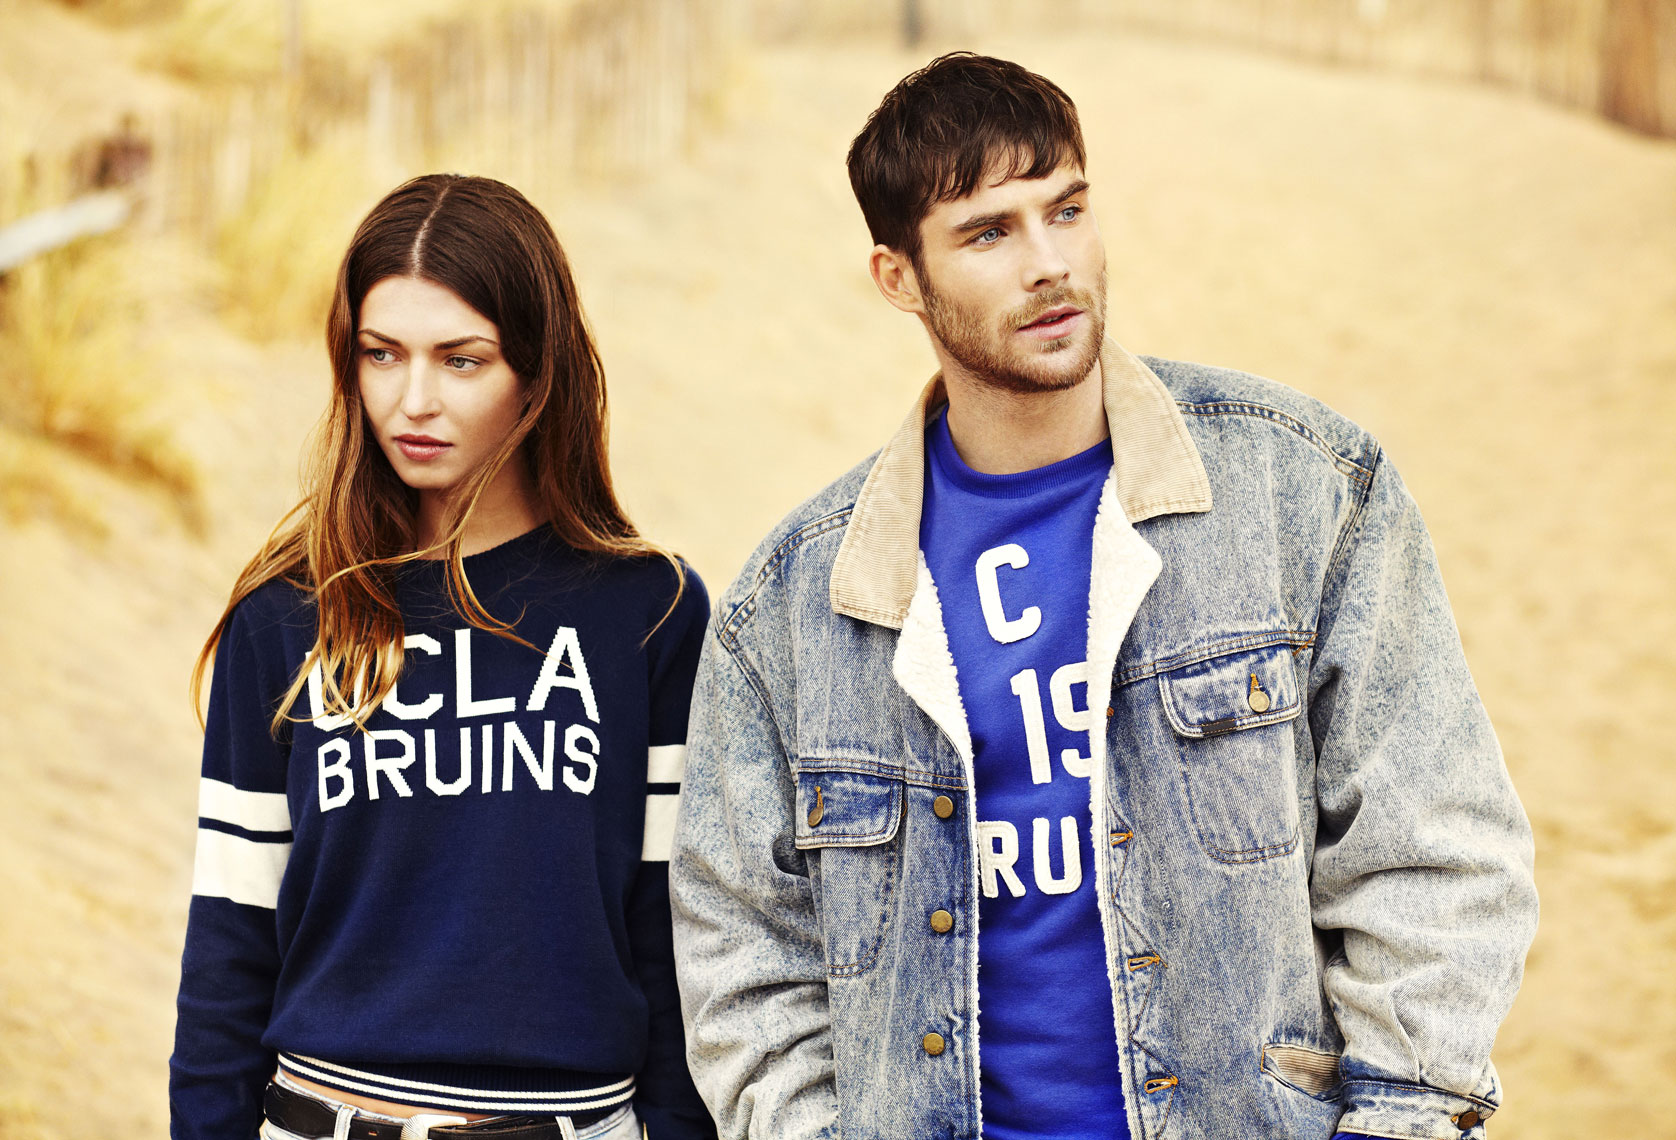 issie-gibbons-fashion-stylist-UCLA-AW14-Bruins-sand-dunes-surf